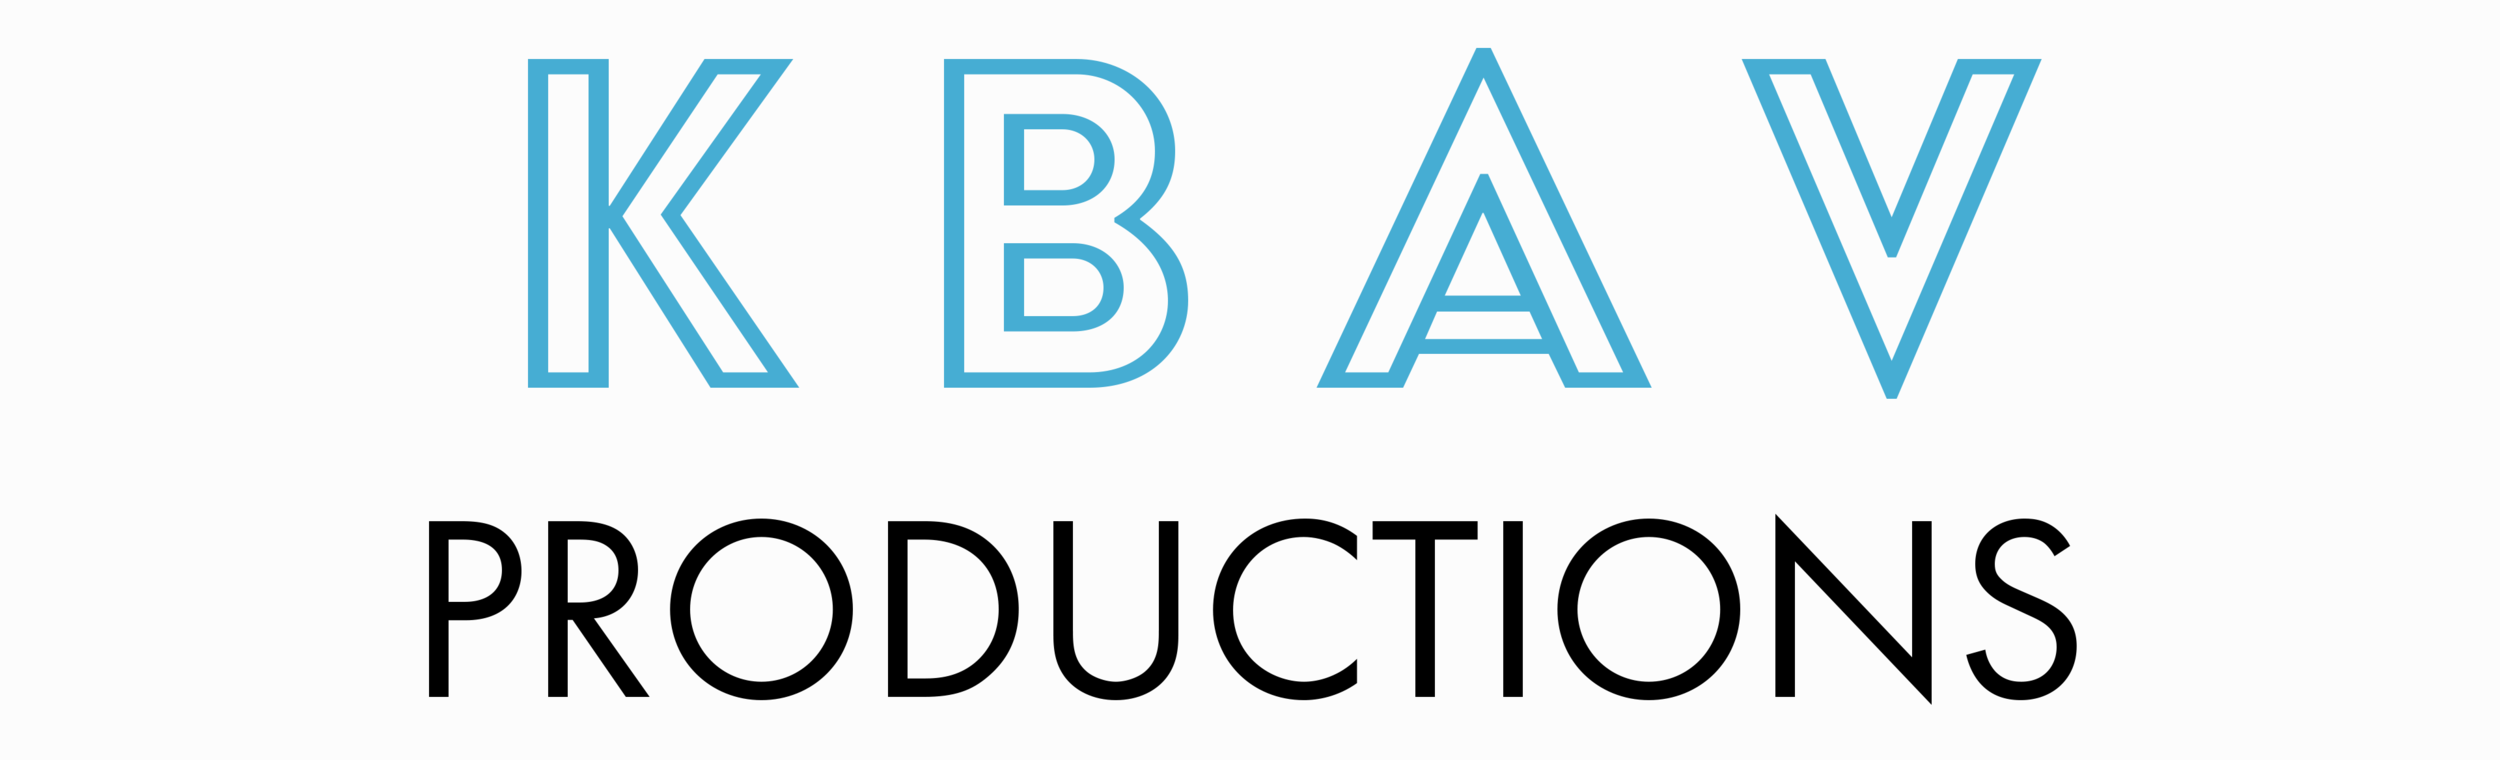 KBAV Productions Logo OFF WHITE.png